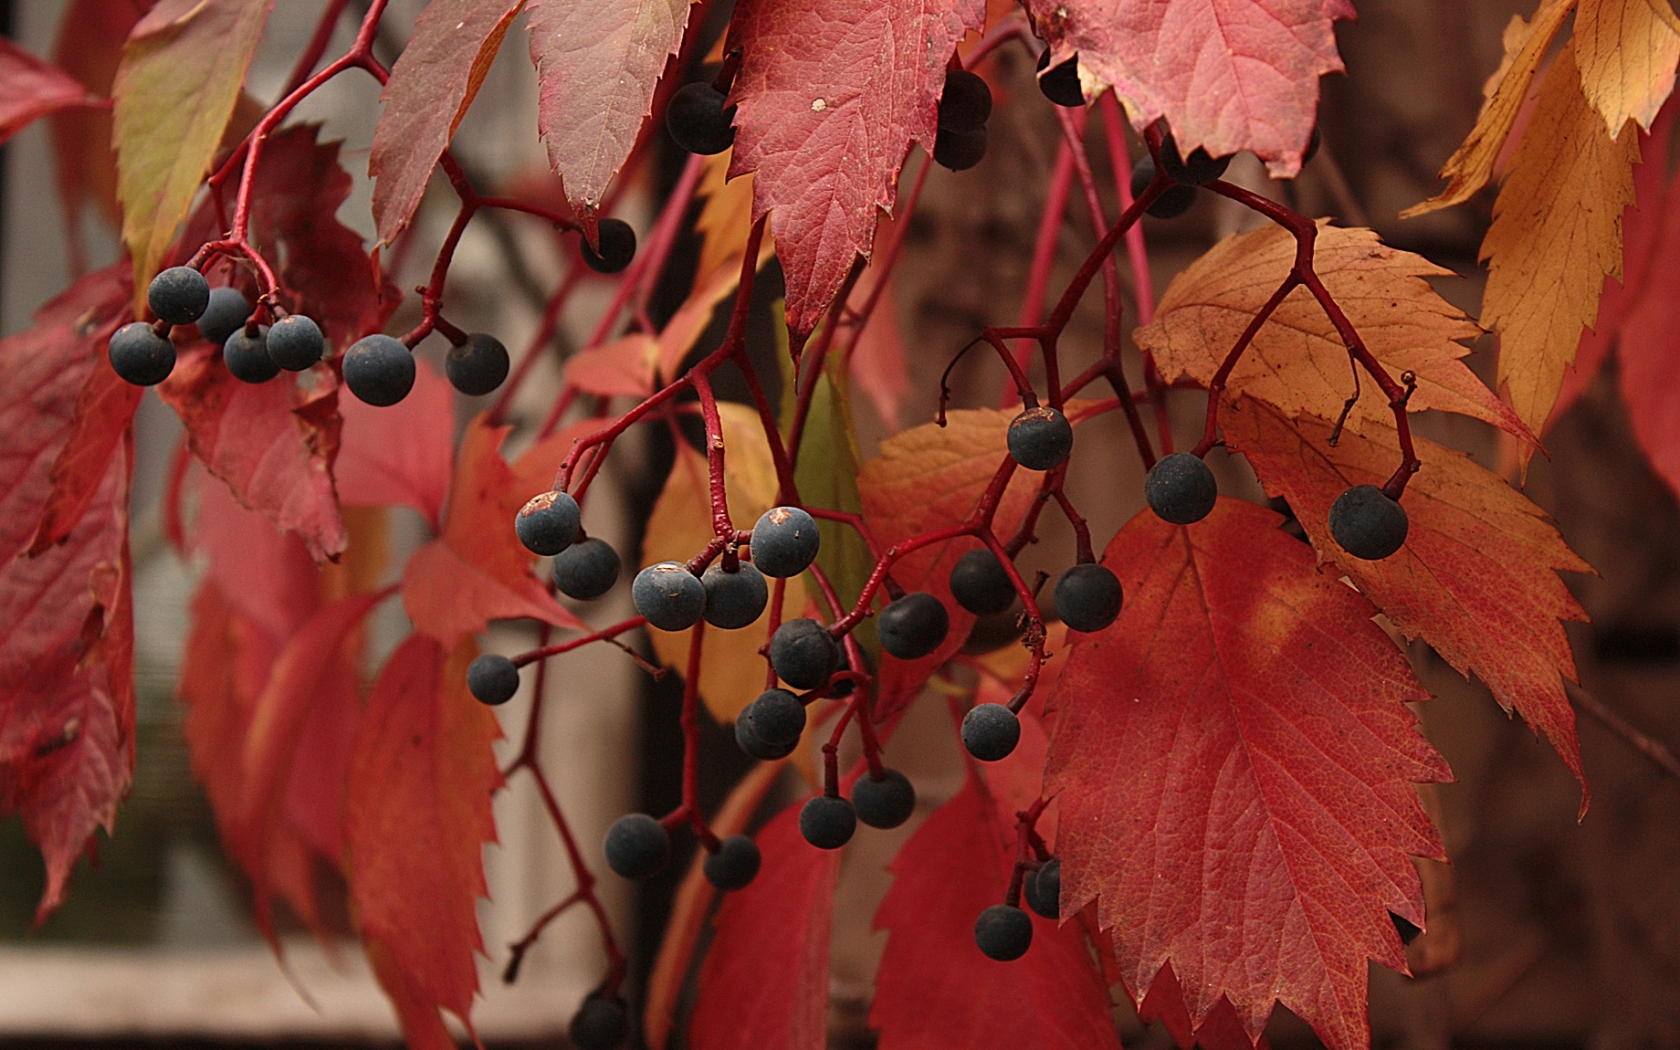 45541 download wallpaper Plants, Leaves, Berries screensavers and pictures for free